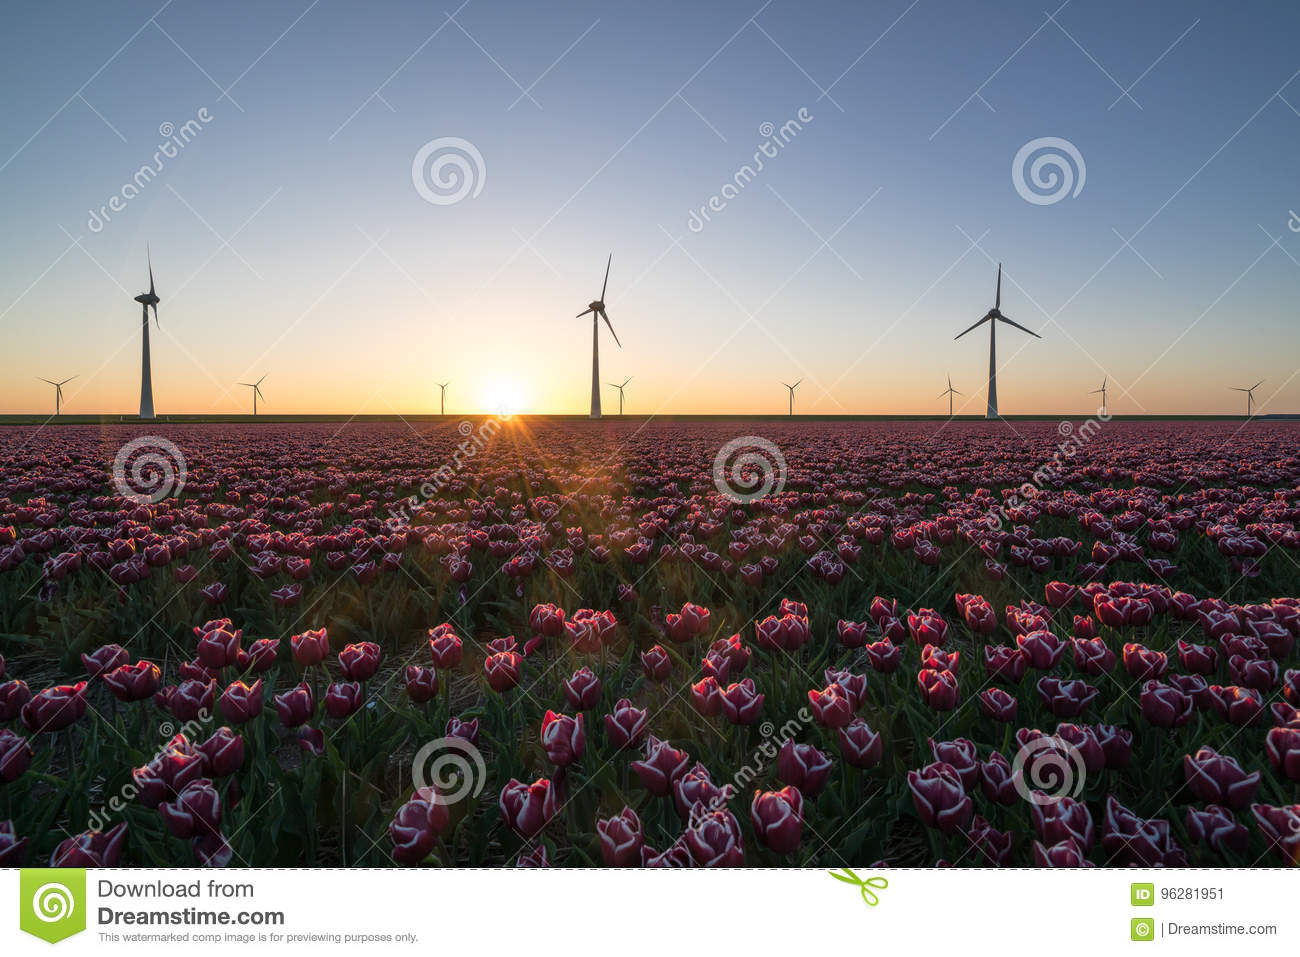 Sunset over Dutch tulip fields with a background of modern windmills